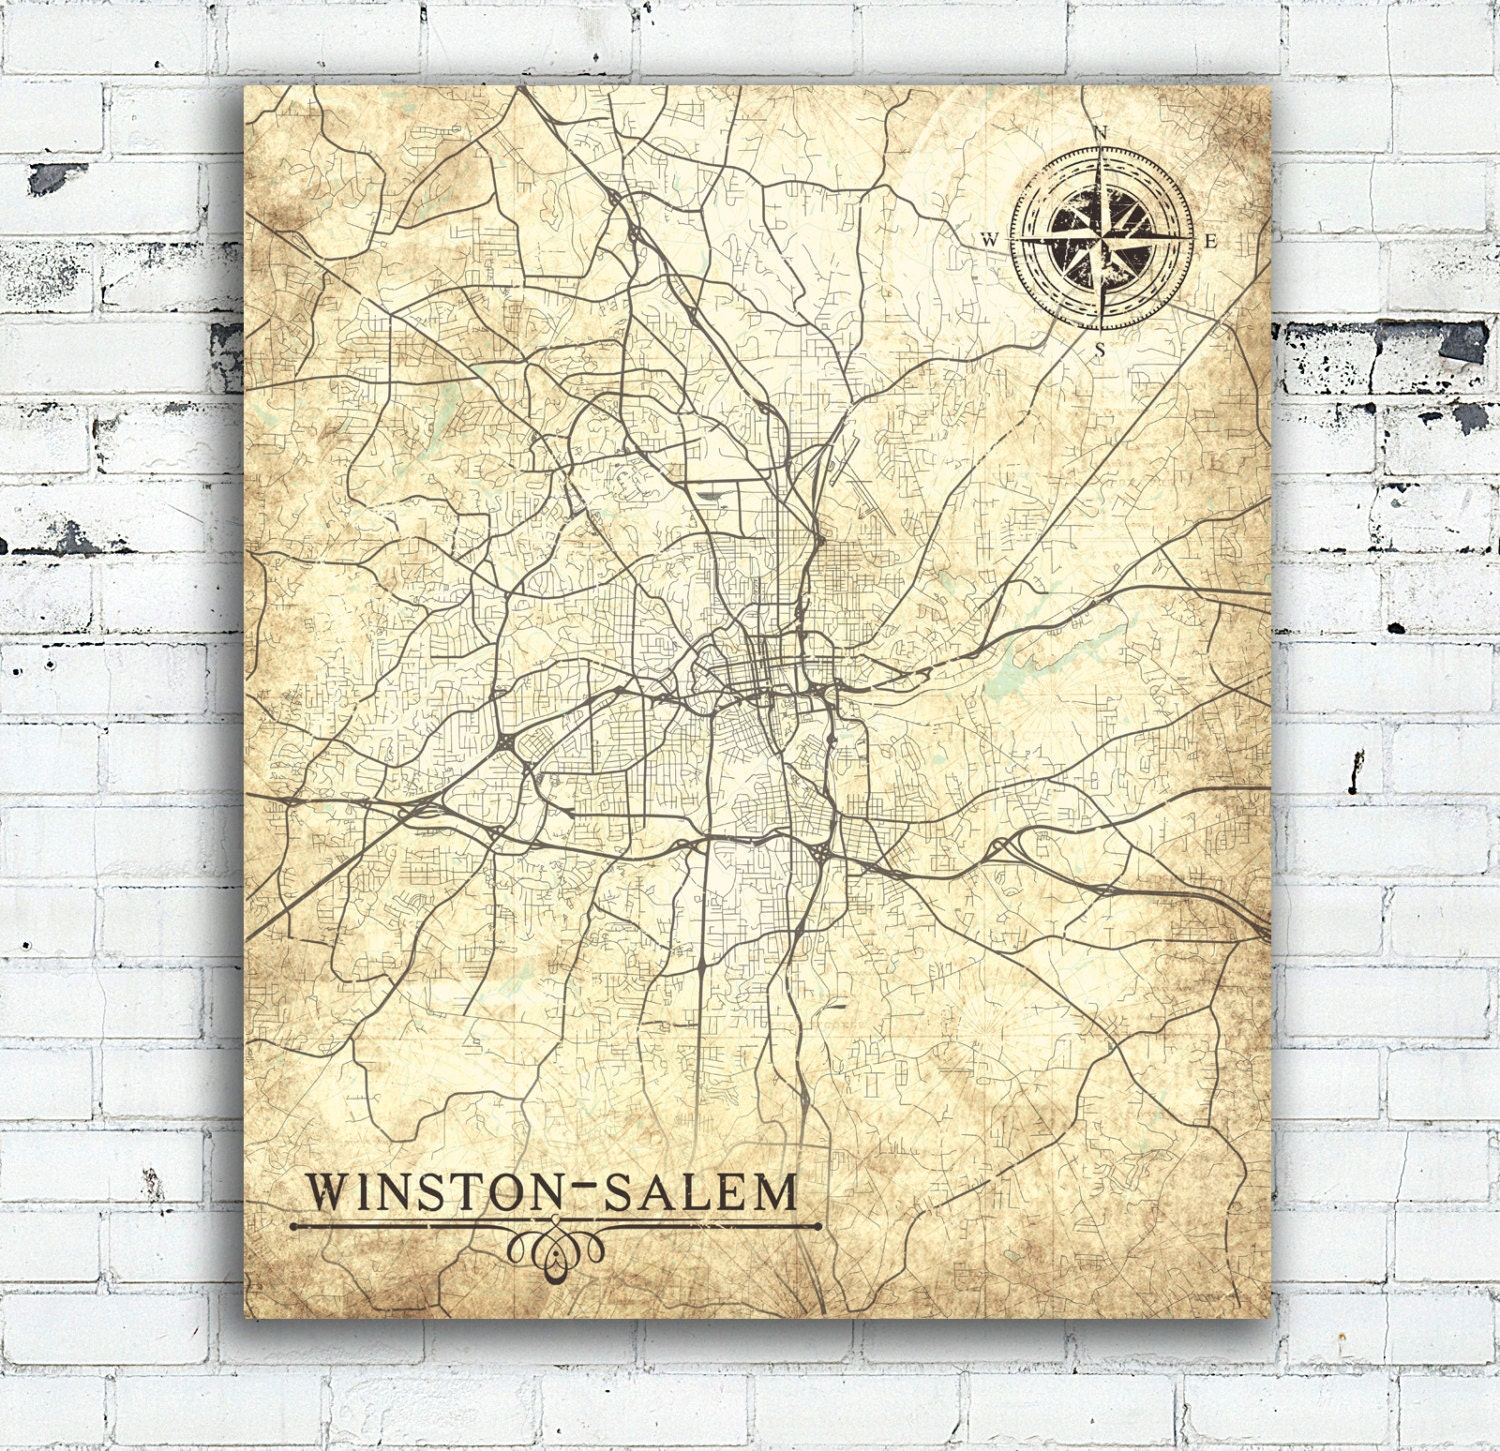 WINSTON-SALEM NC Canvas Print Winston Salem Nc North Carolina ...